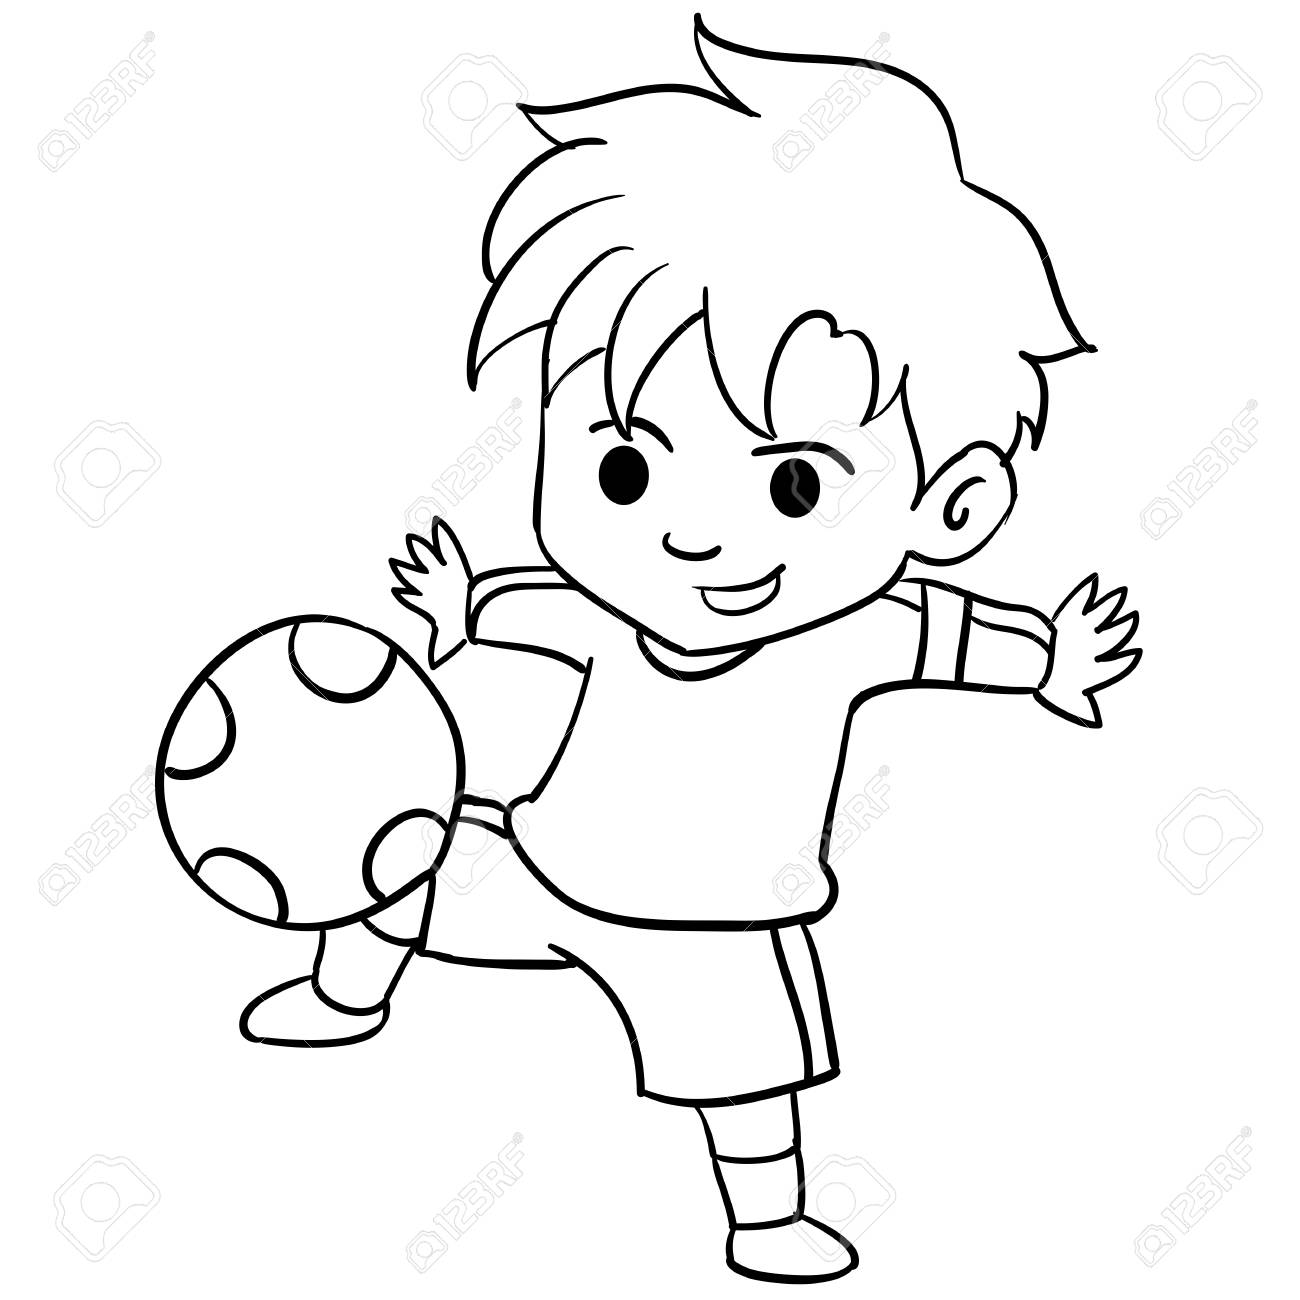 Collection Of Kid Playing Football Royalty Free Cliparts Vectors And Stock Illustration Image 74509384